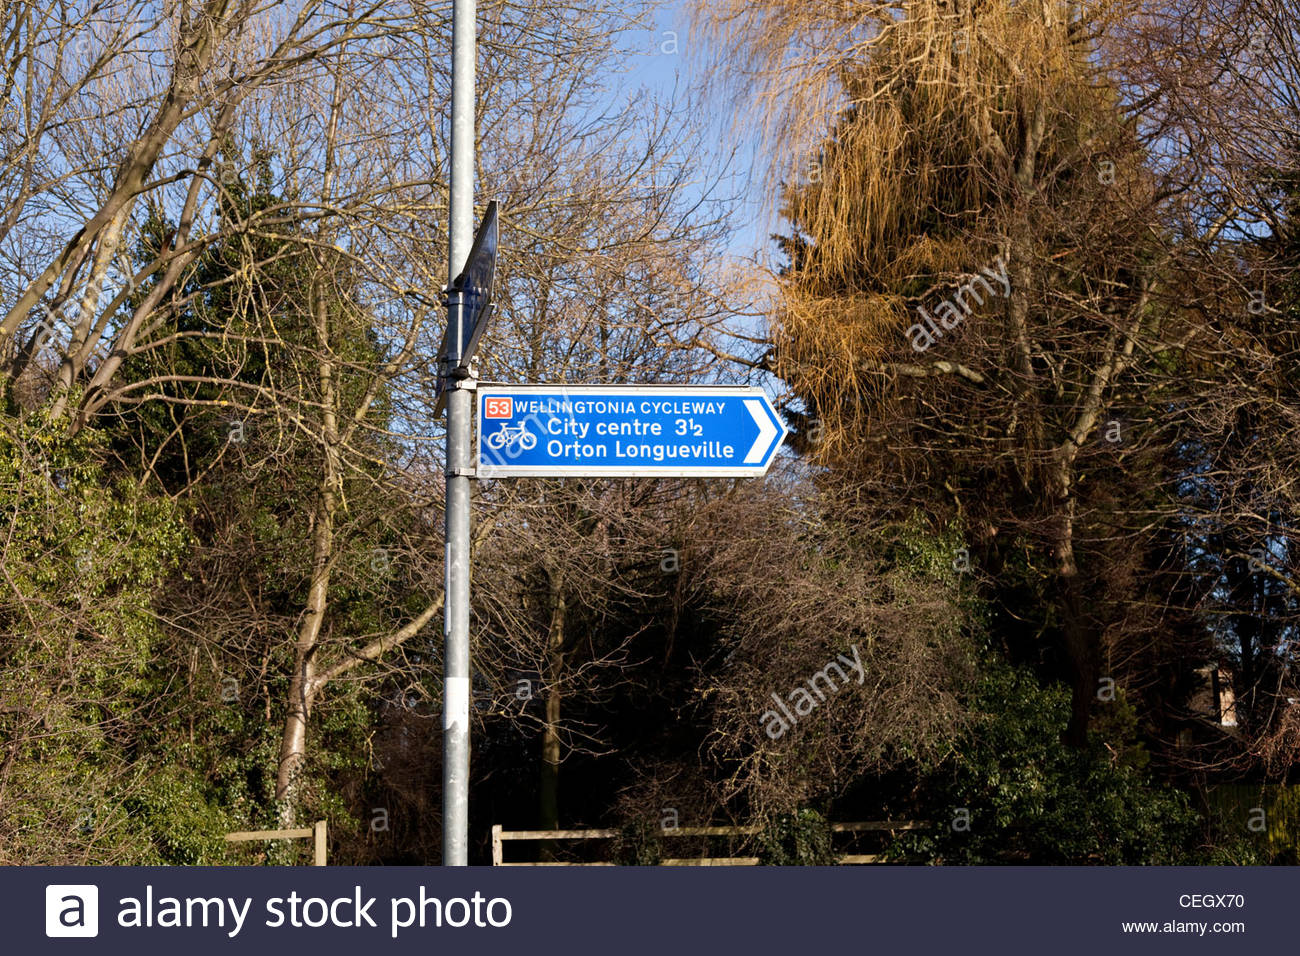 Cycleway signpost for the Wellingtonia Cycleway in Peterborough, Cambridgeshire, UK - Stock Image